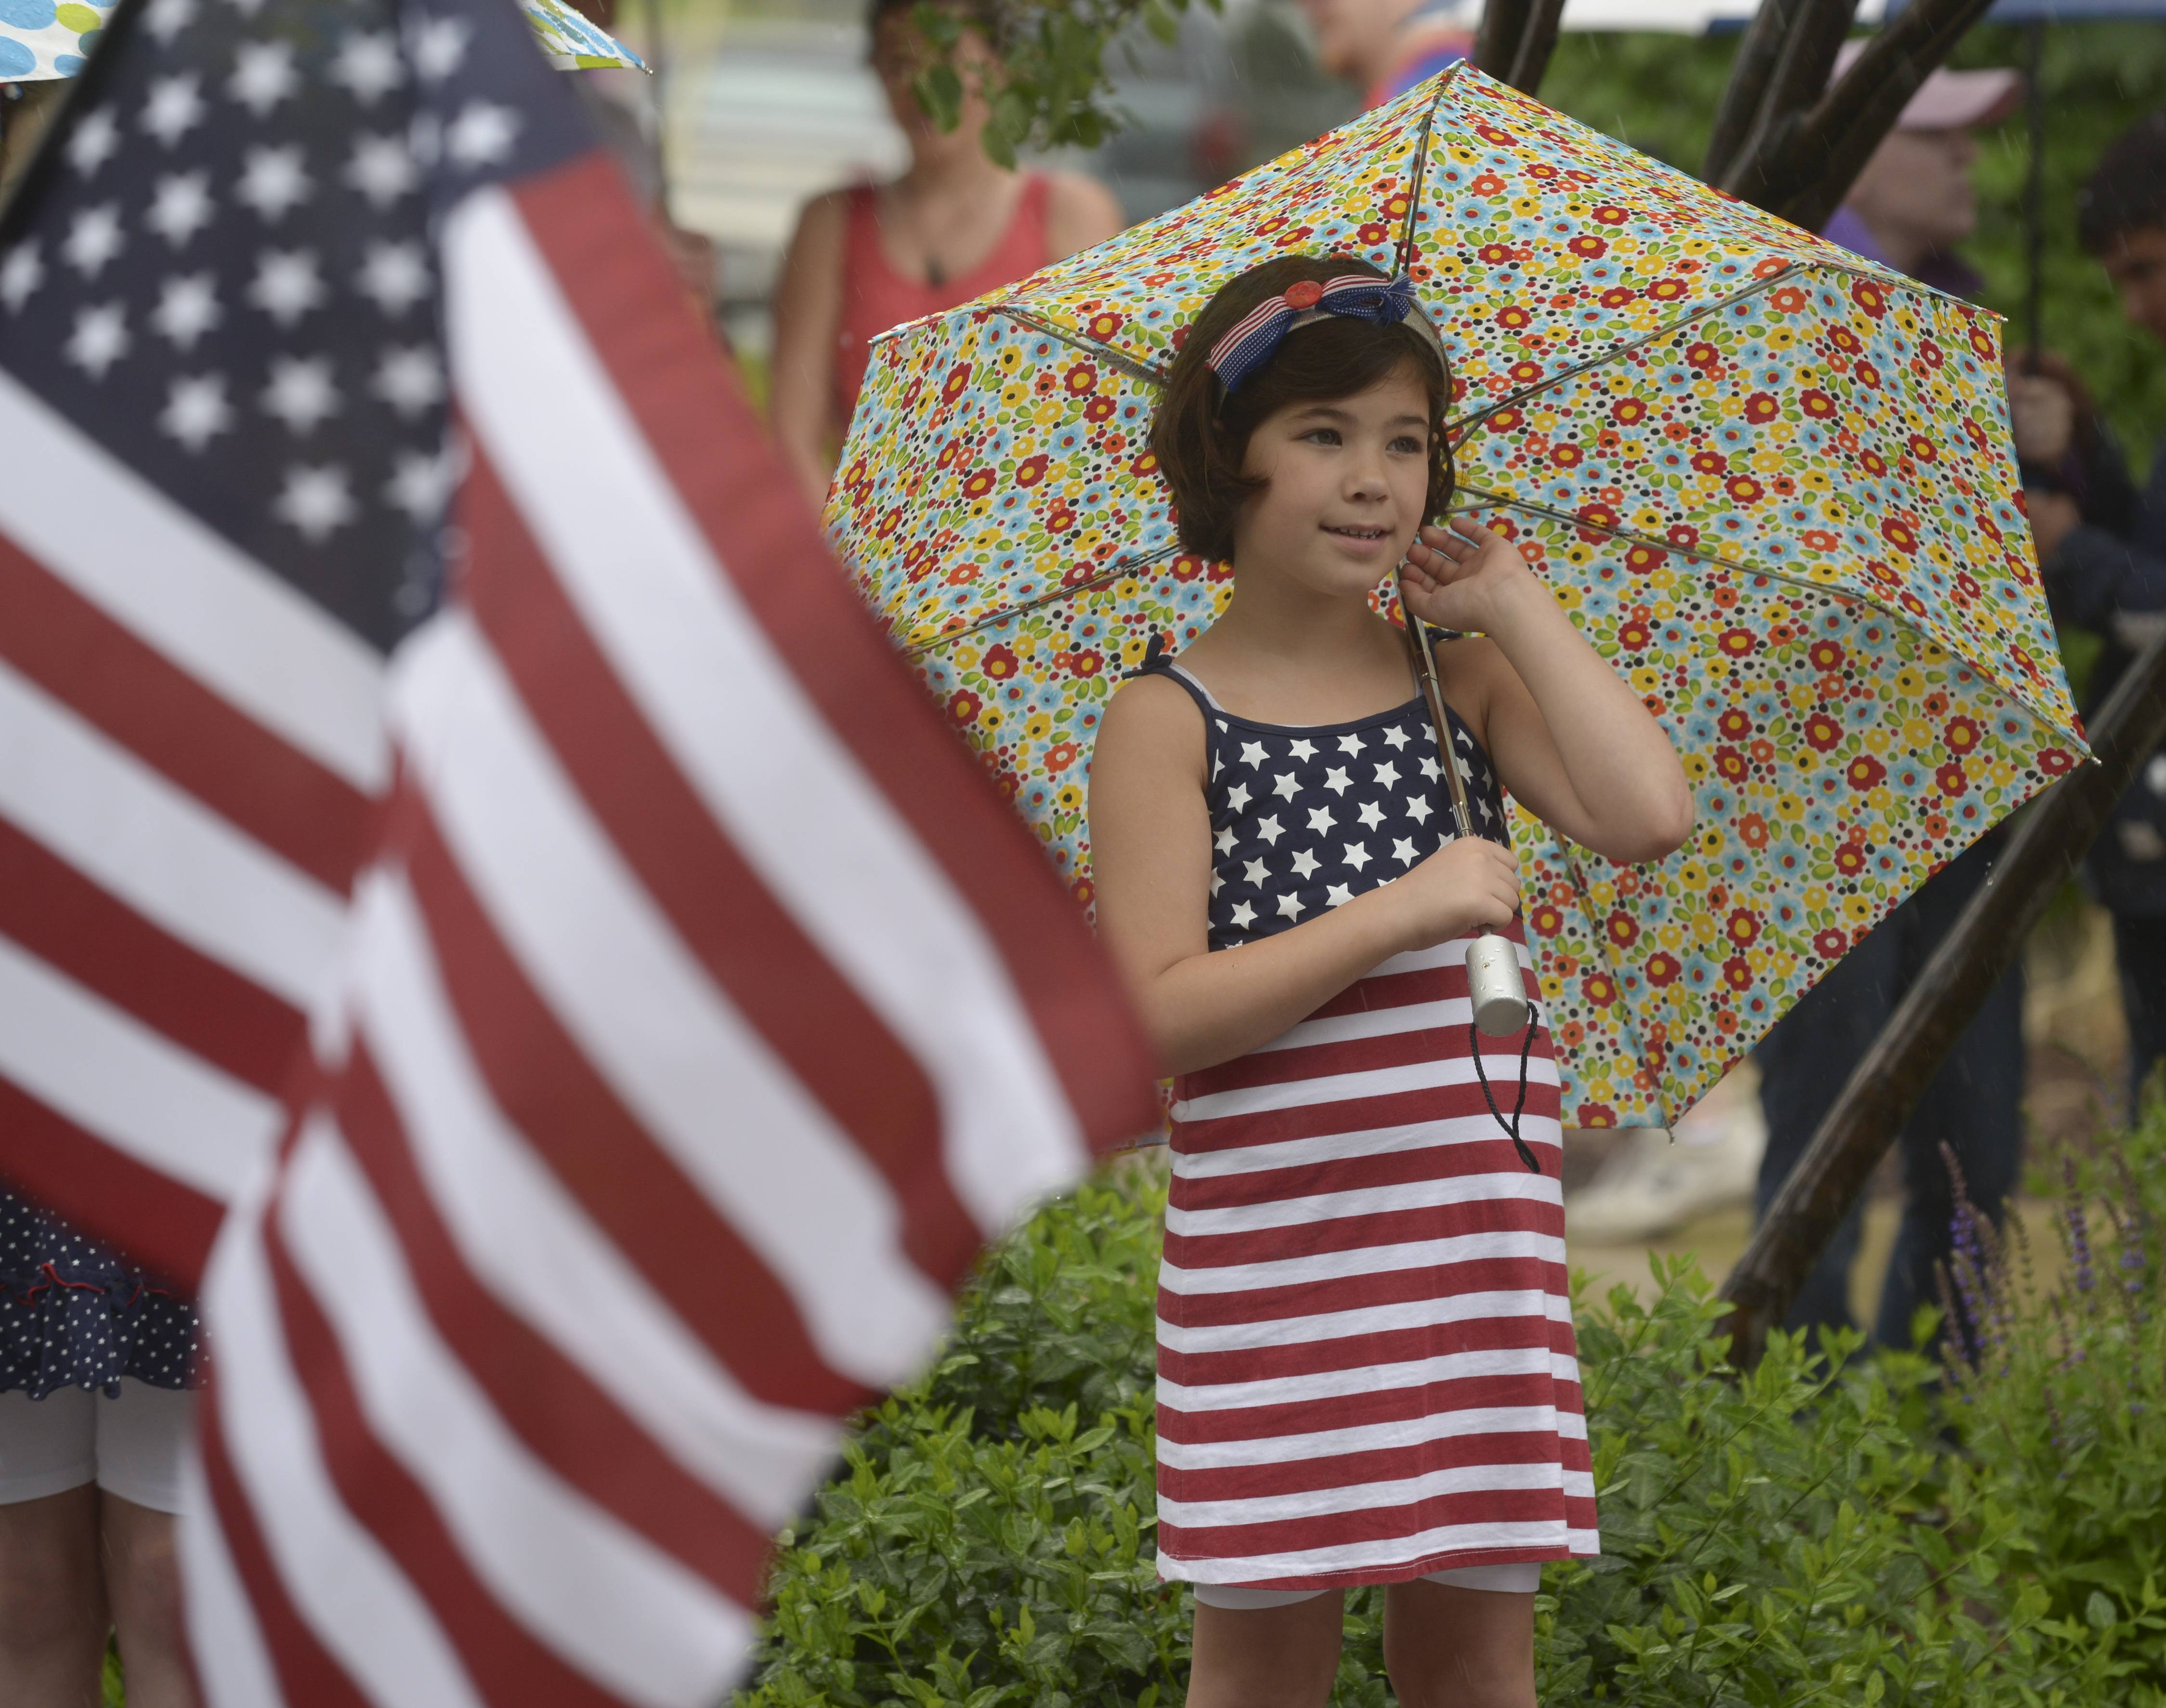 Reagan Pasqualicchio, 9 of Winfield watches the Wheaton Memorial Day Parade Monday.